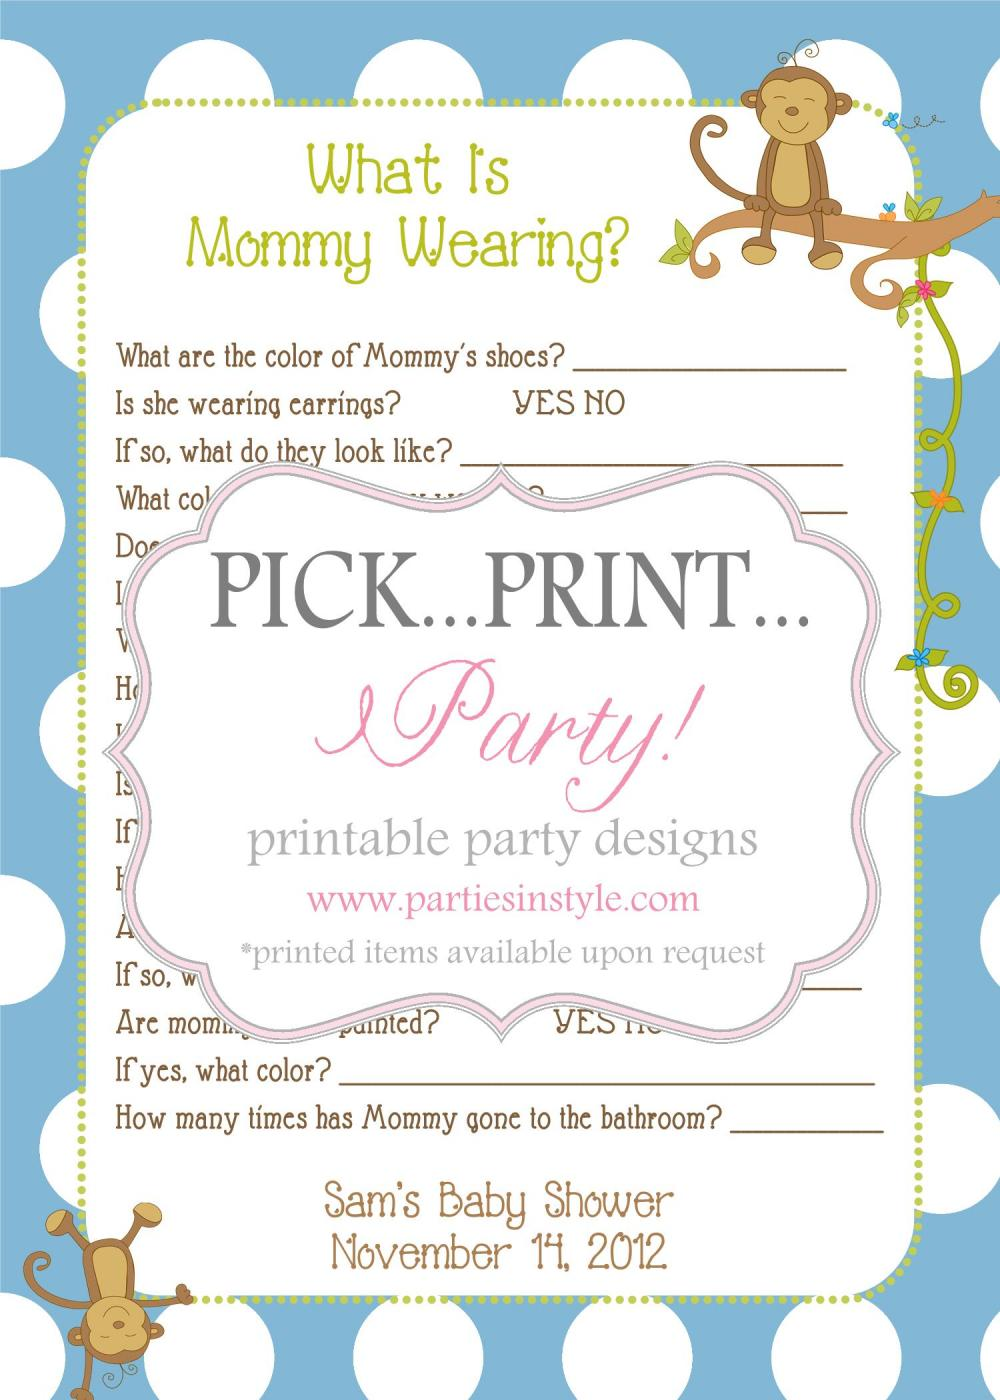 Baby Shower Game - What is Mommy Wearing - Printable DIY